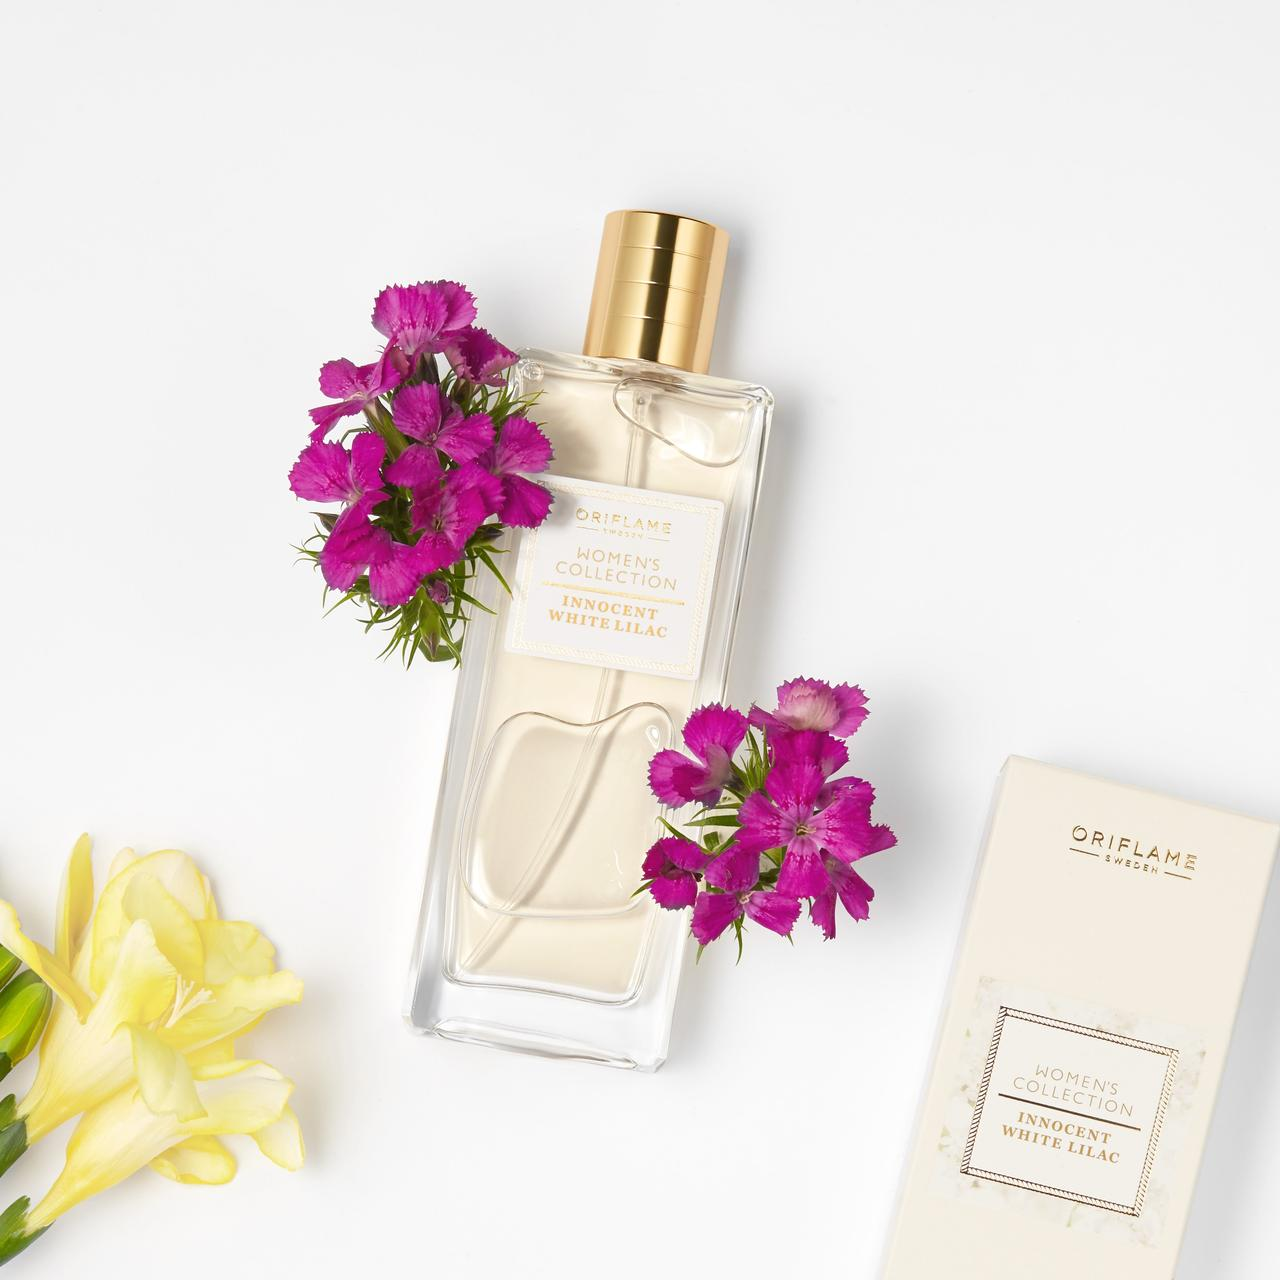 Туалетная вода Women's Collection Innocent White Lilac Oriflame